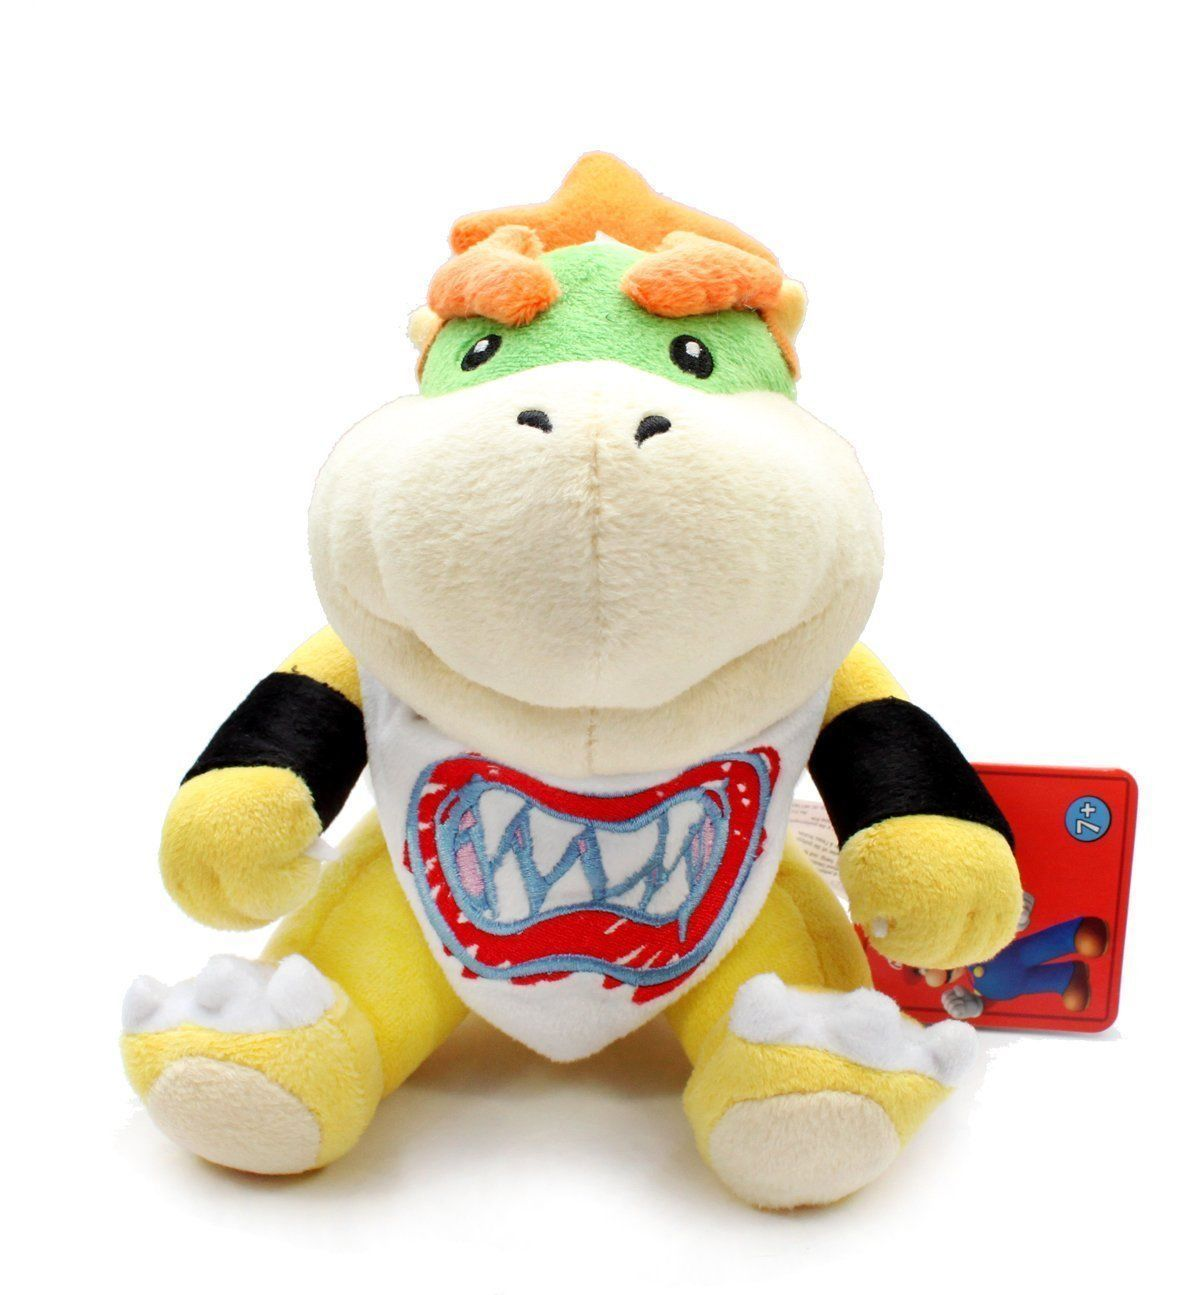 Cute 7in Baby Bowser Jr Koopa Plush Fingure Doll Toy Super Mario Brother Figure Stuffed Animal Xmas Gift Wholesale